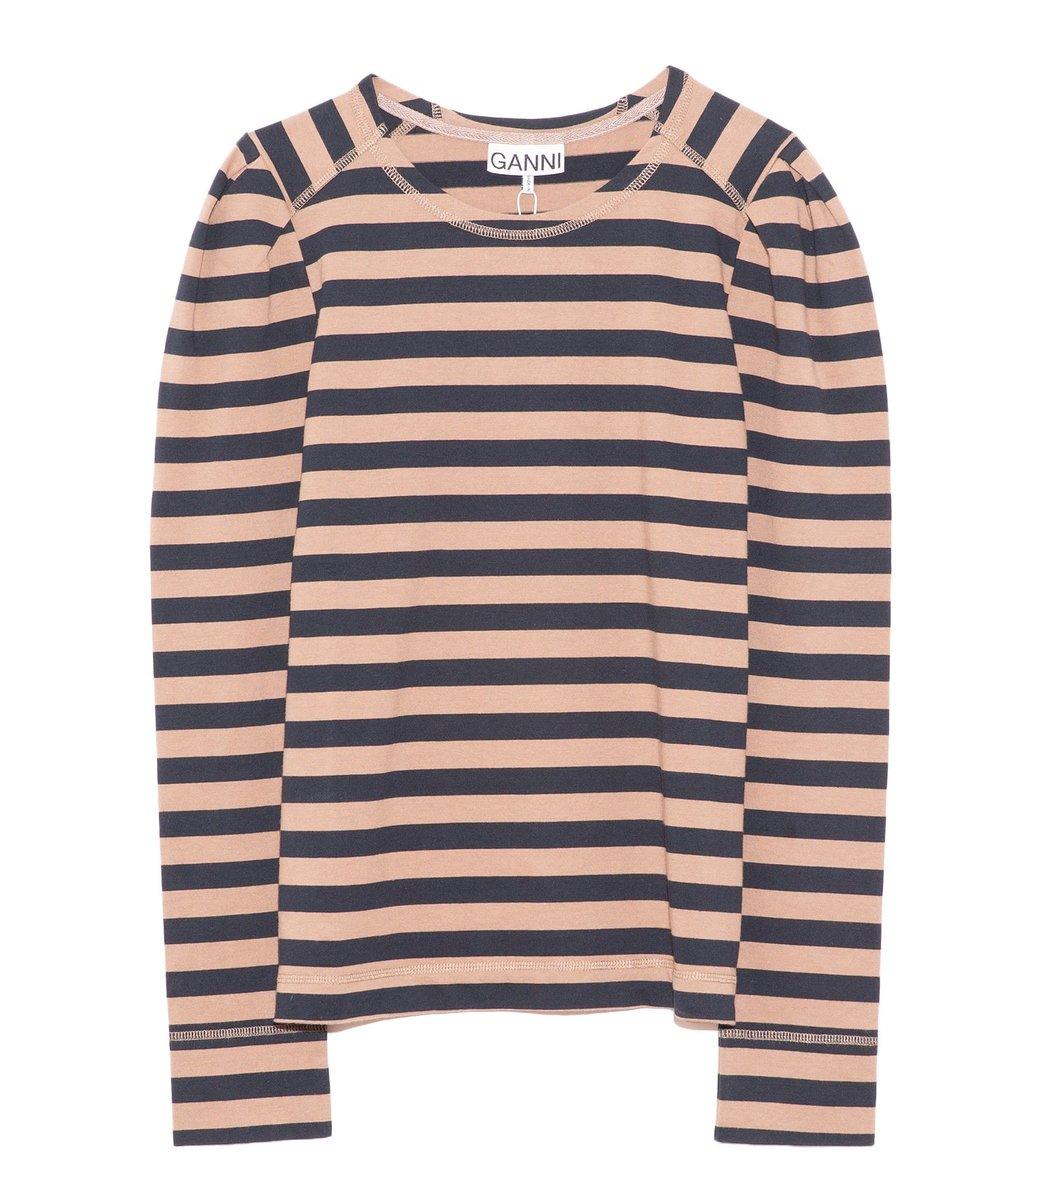 Ganni Cottons Striped Cotton Jersey Tee in Sky Captain